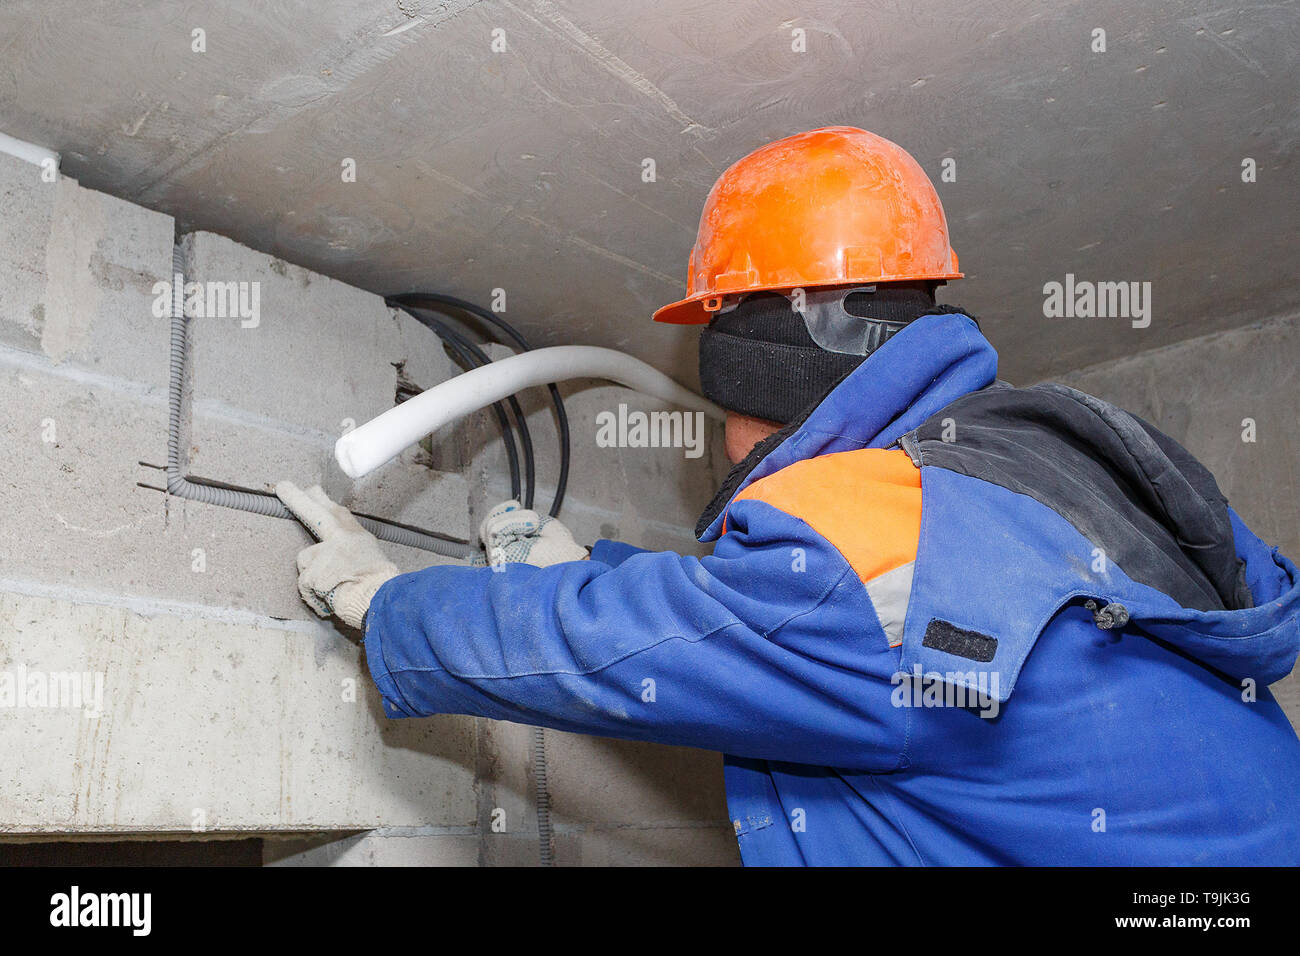 The worker in the helmet is laying electrical wiring during the roughing phase. - Stock Image